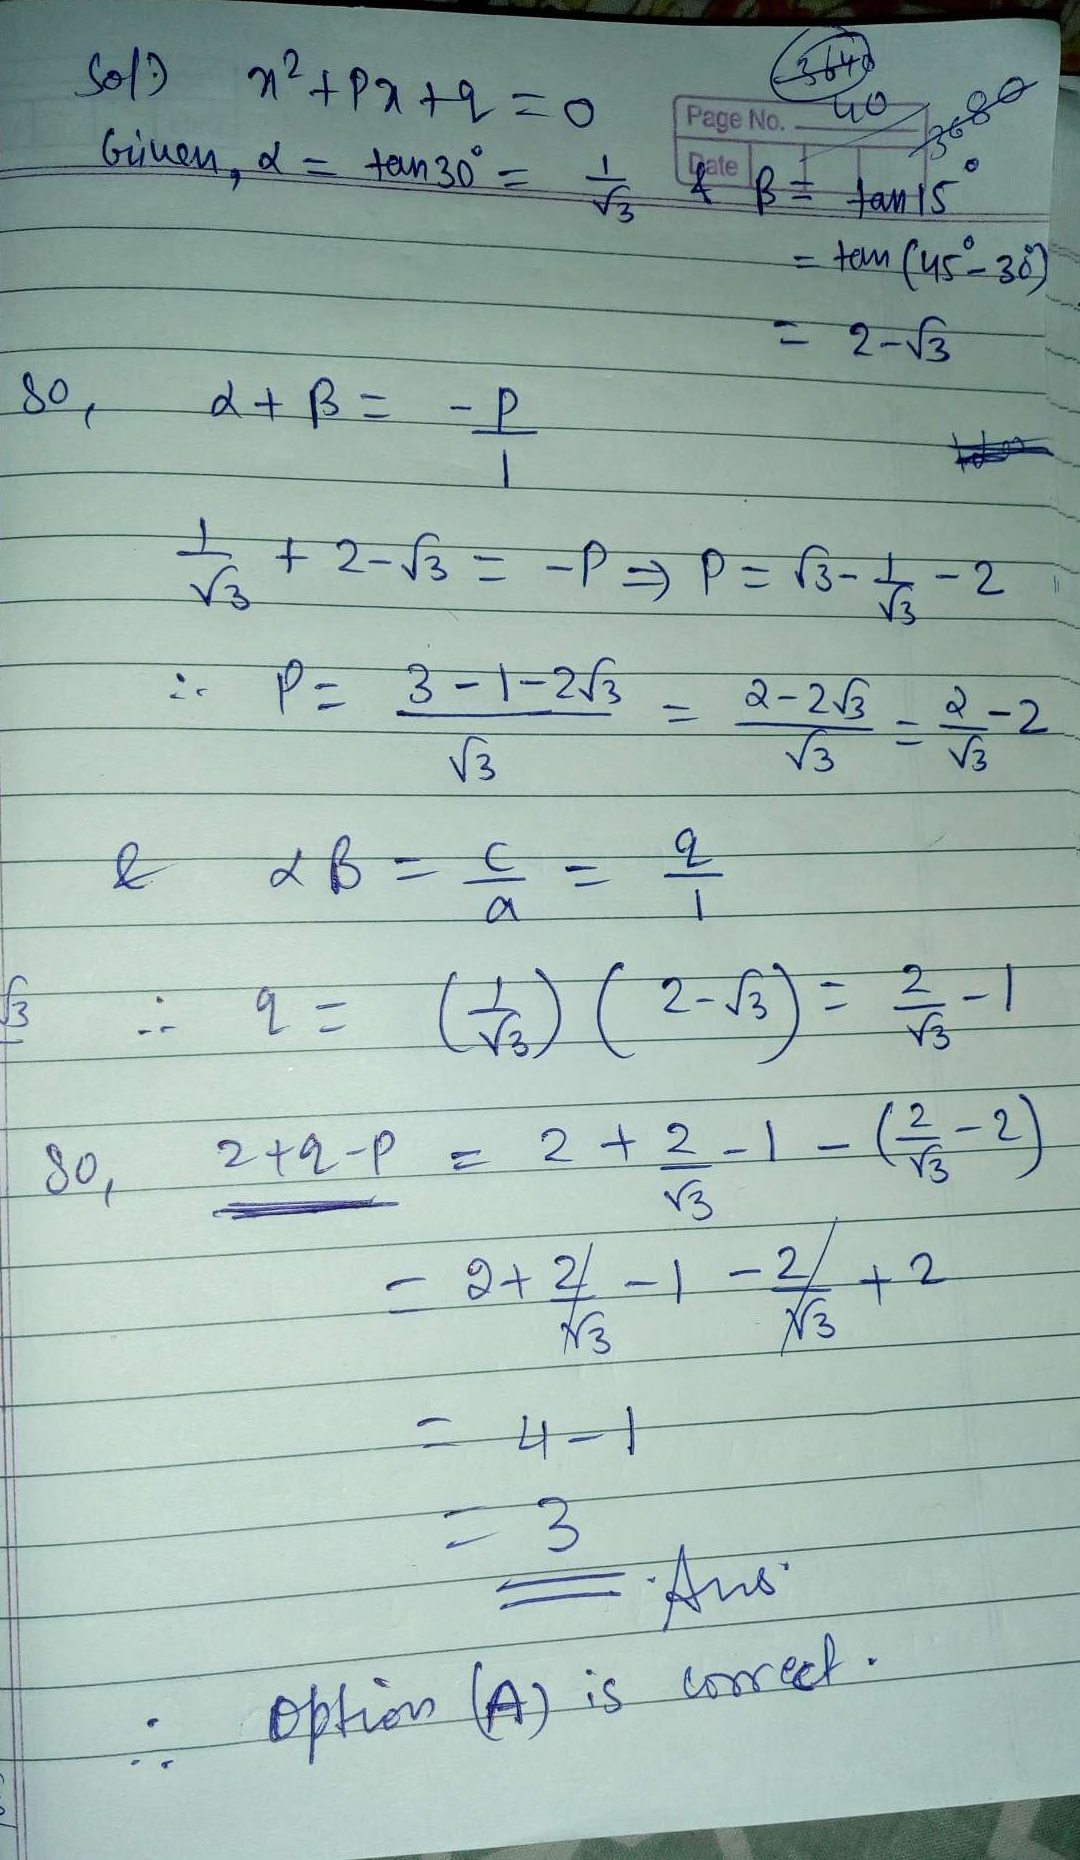 If the roots of the quadratic equation x^2 + px + q = 0 are tan 30° and tan 15°, respectively then the value of 2 + q - p is-